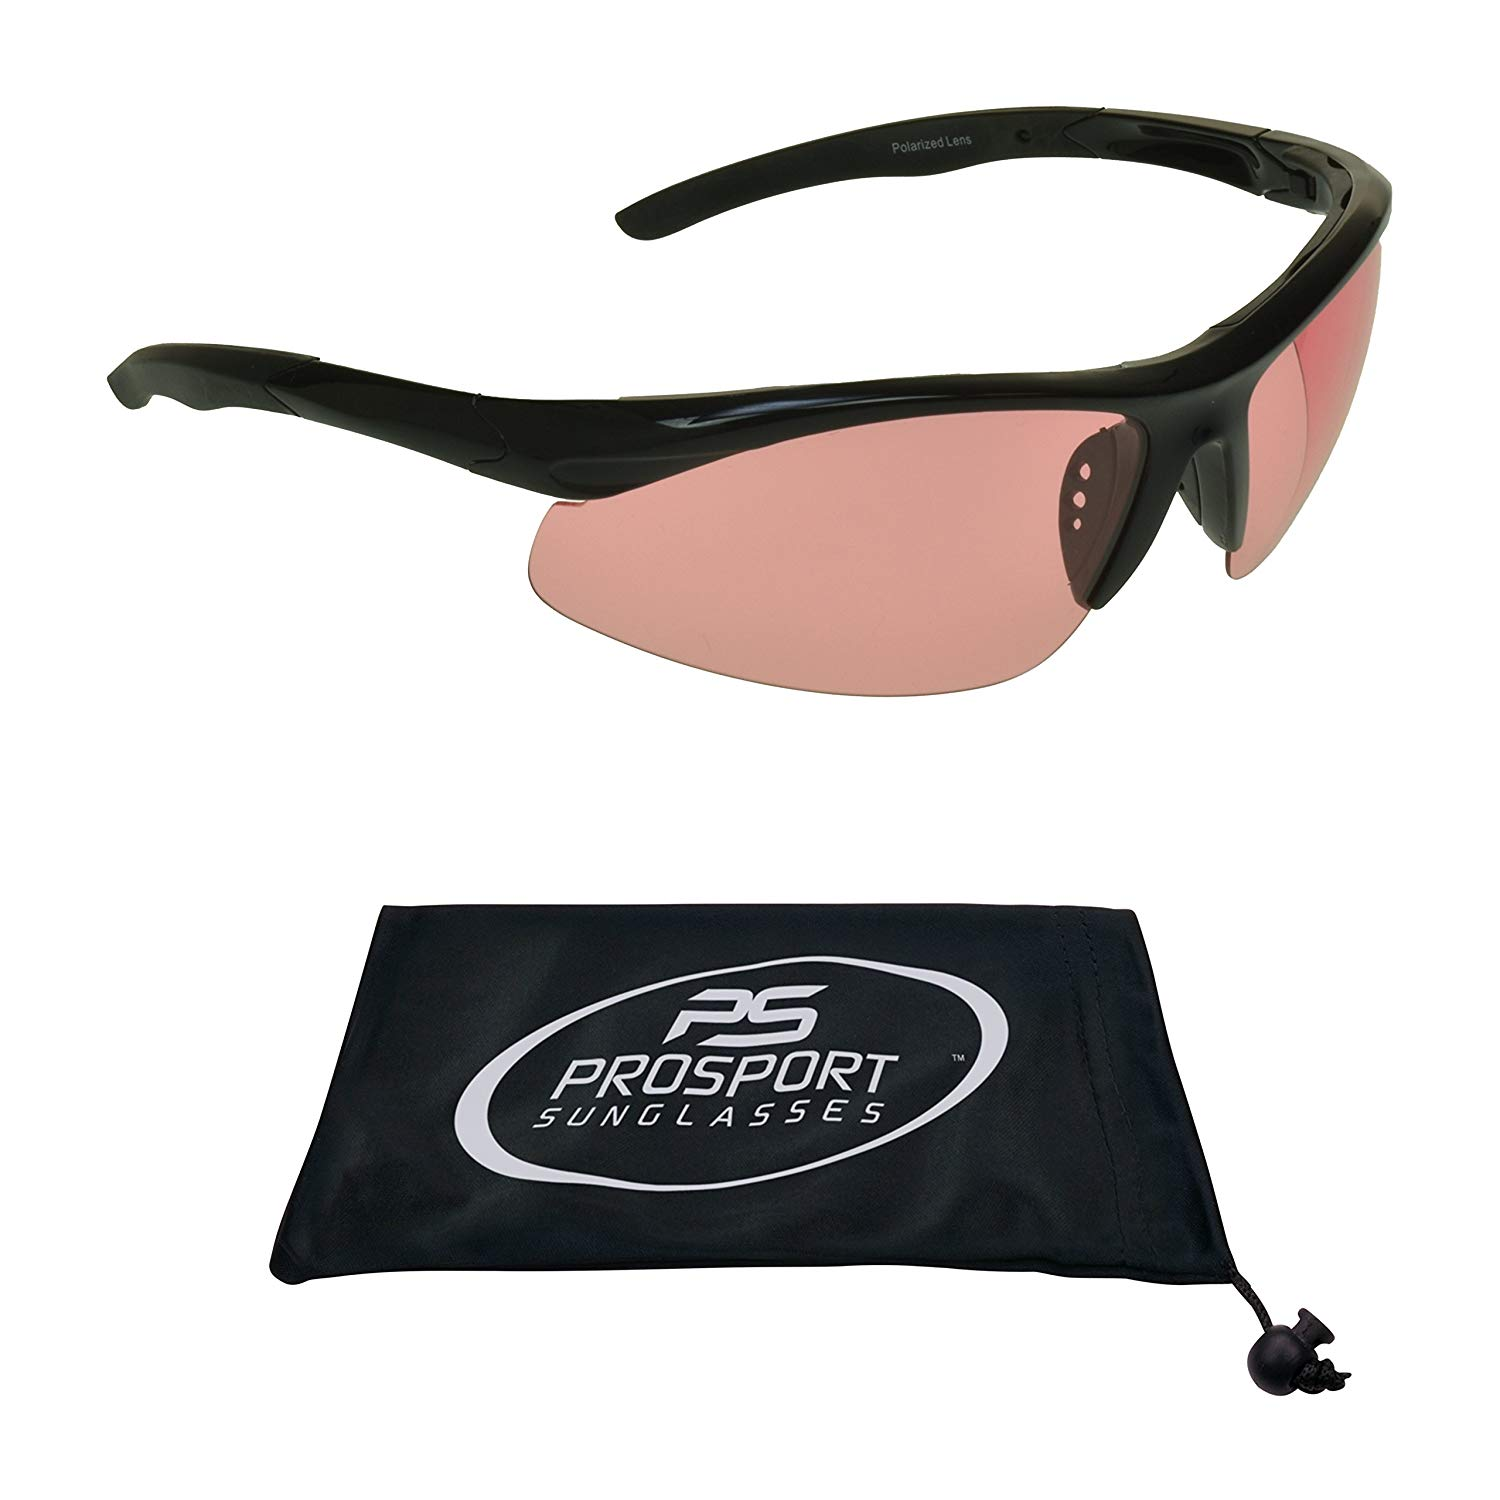 2a10614382 Get Quotations · TR90 Polarized Sunglasses Pink lens or HD Vision.  Unbreakable and Light weight Semi Rimless